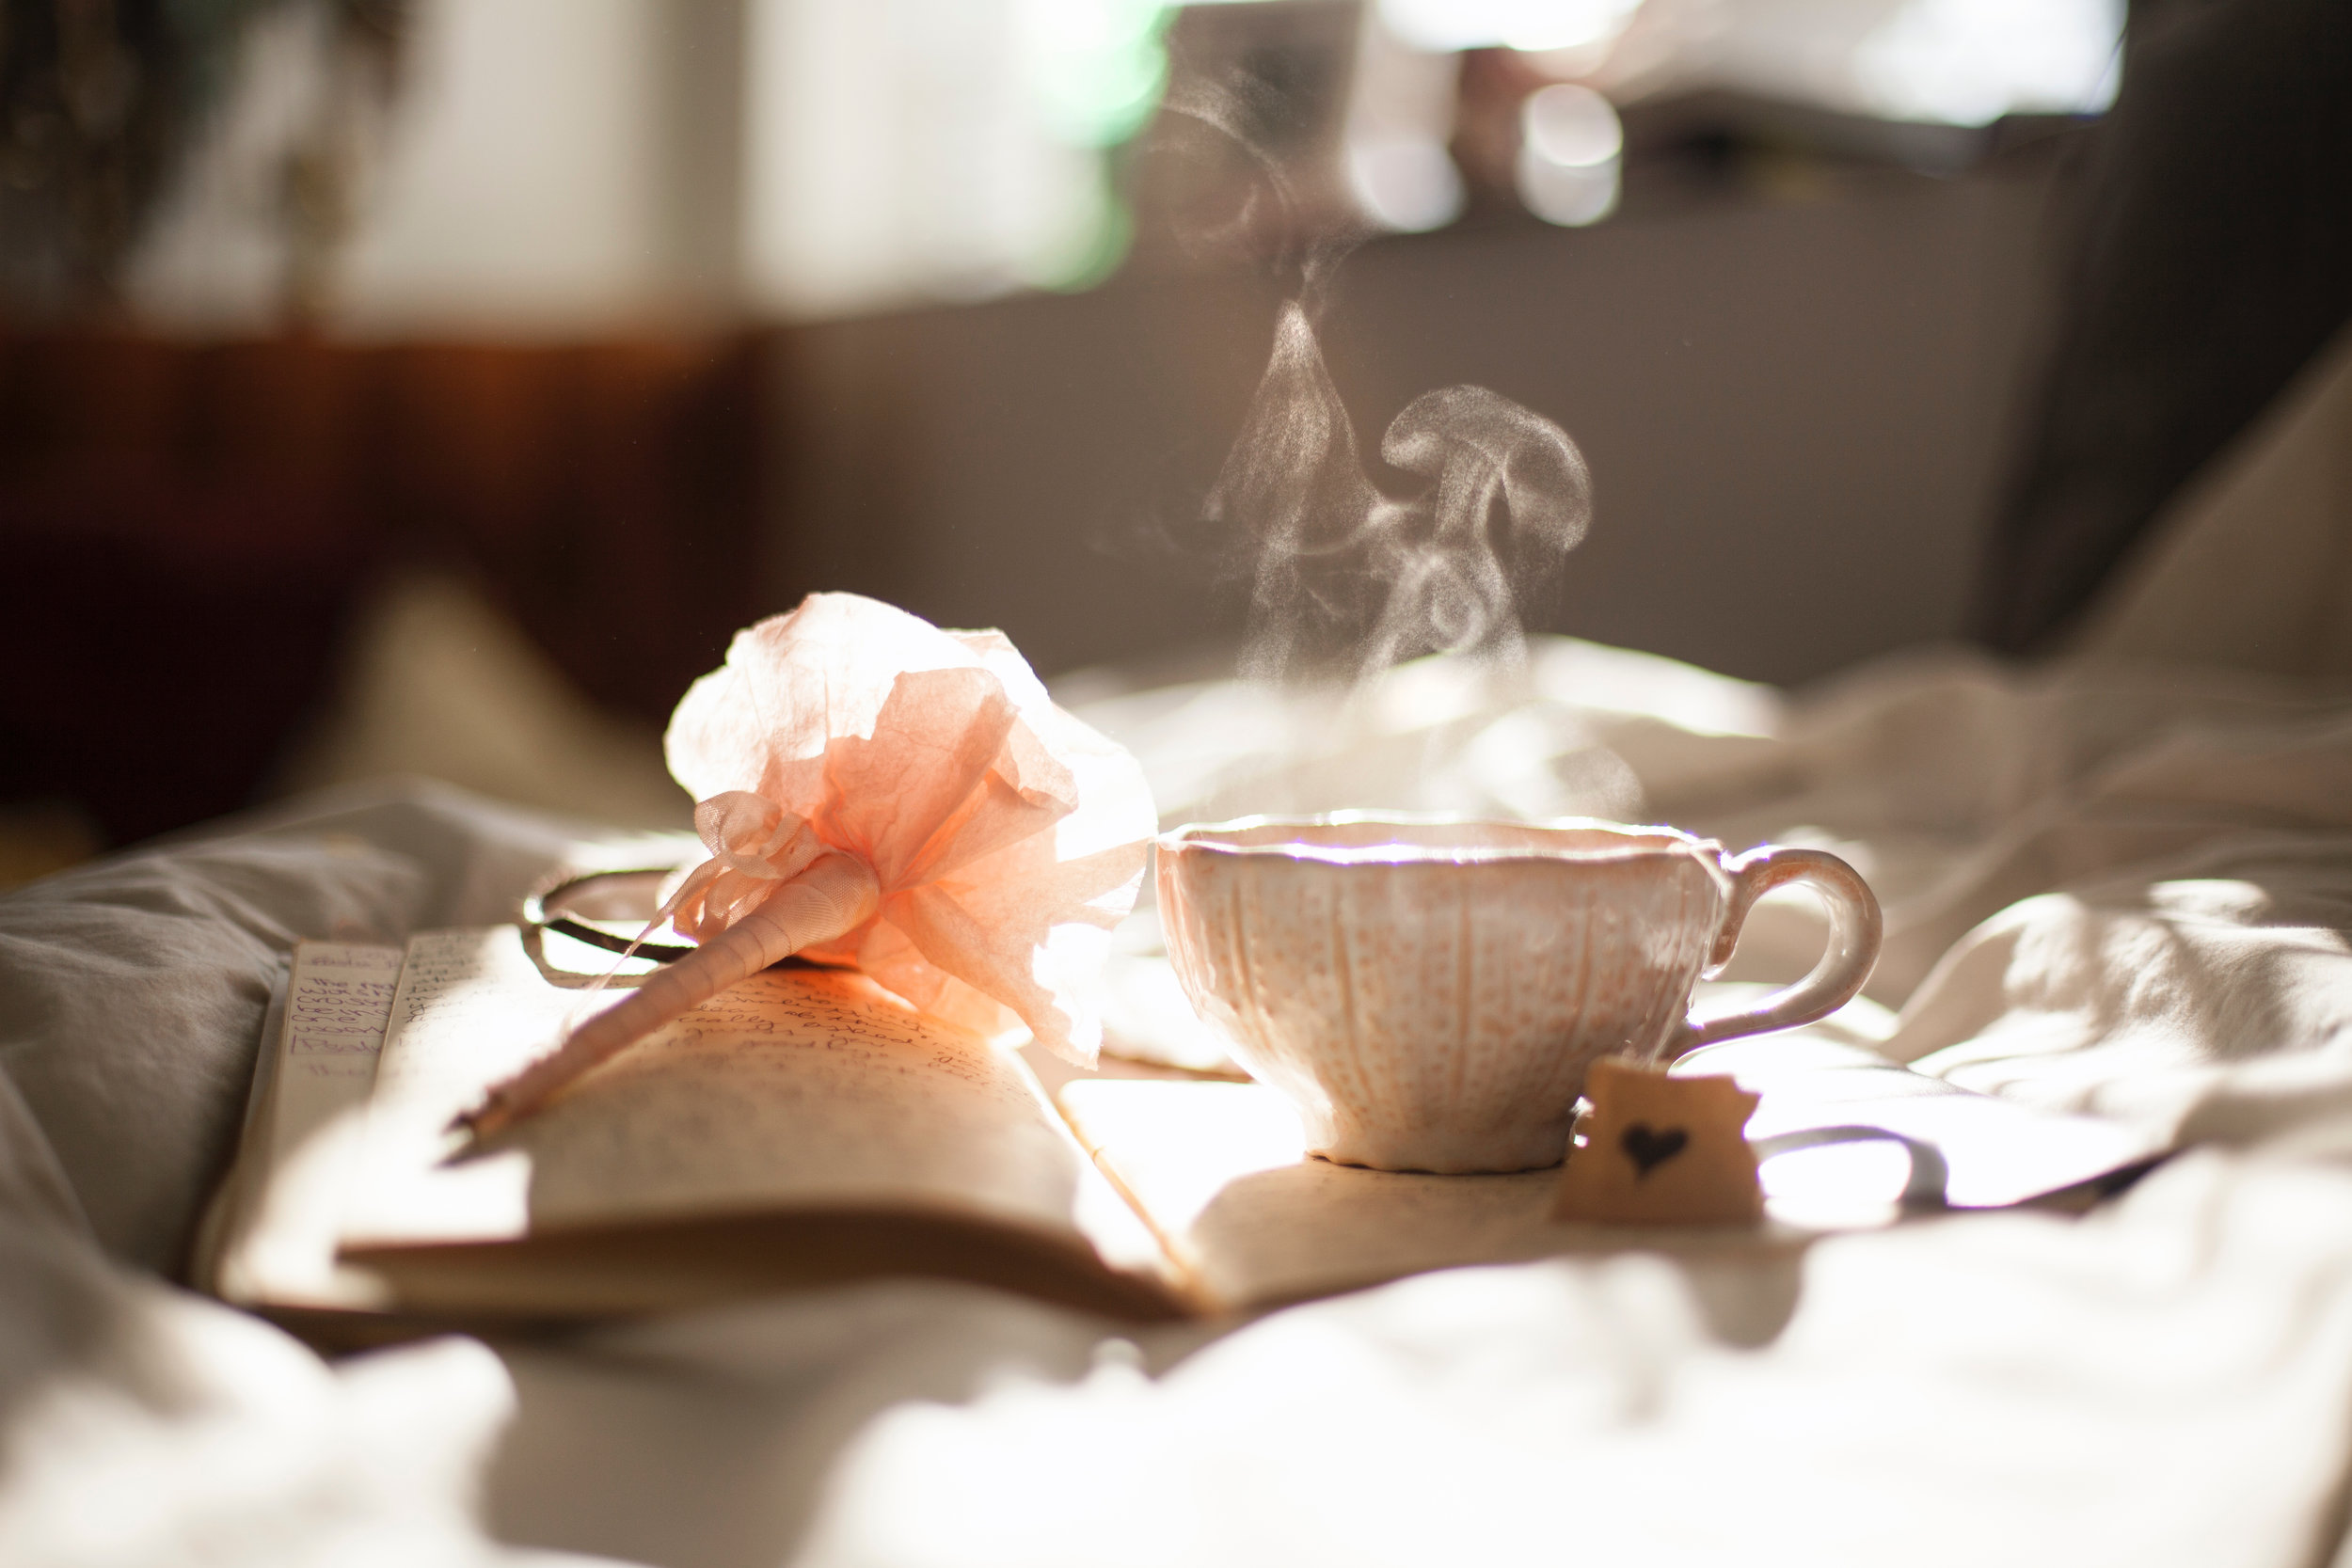 Journal and tea by Carli Jeen